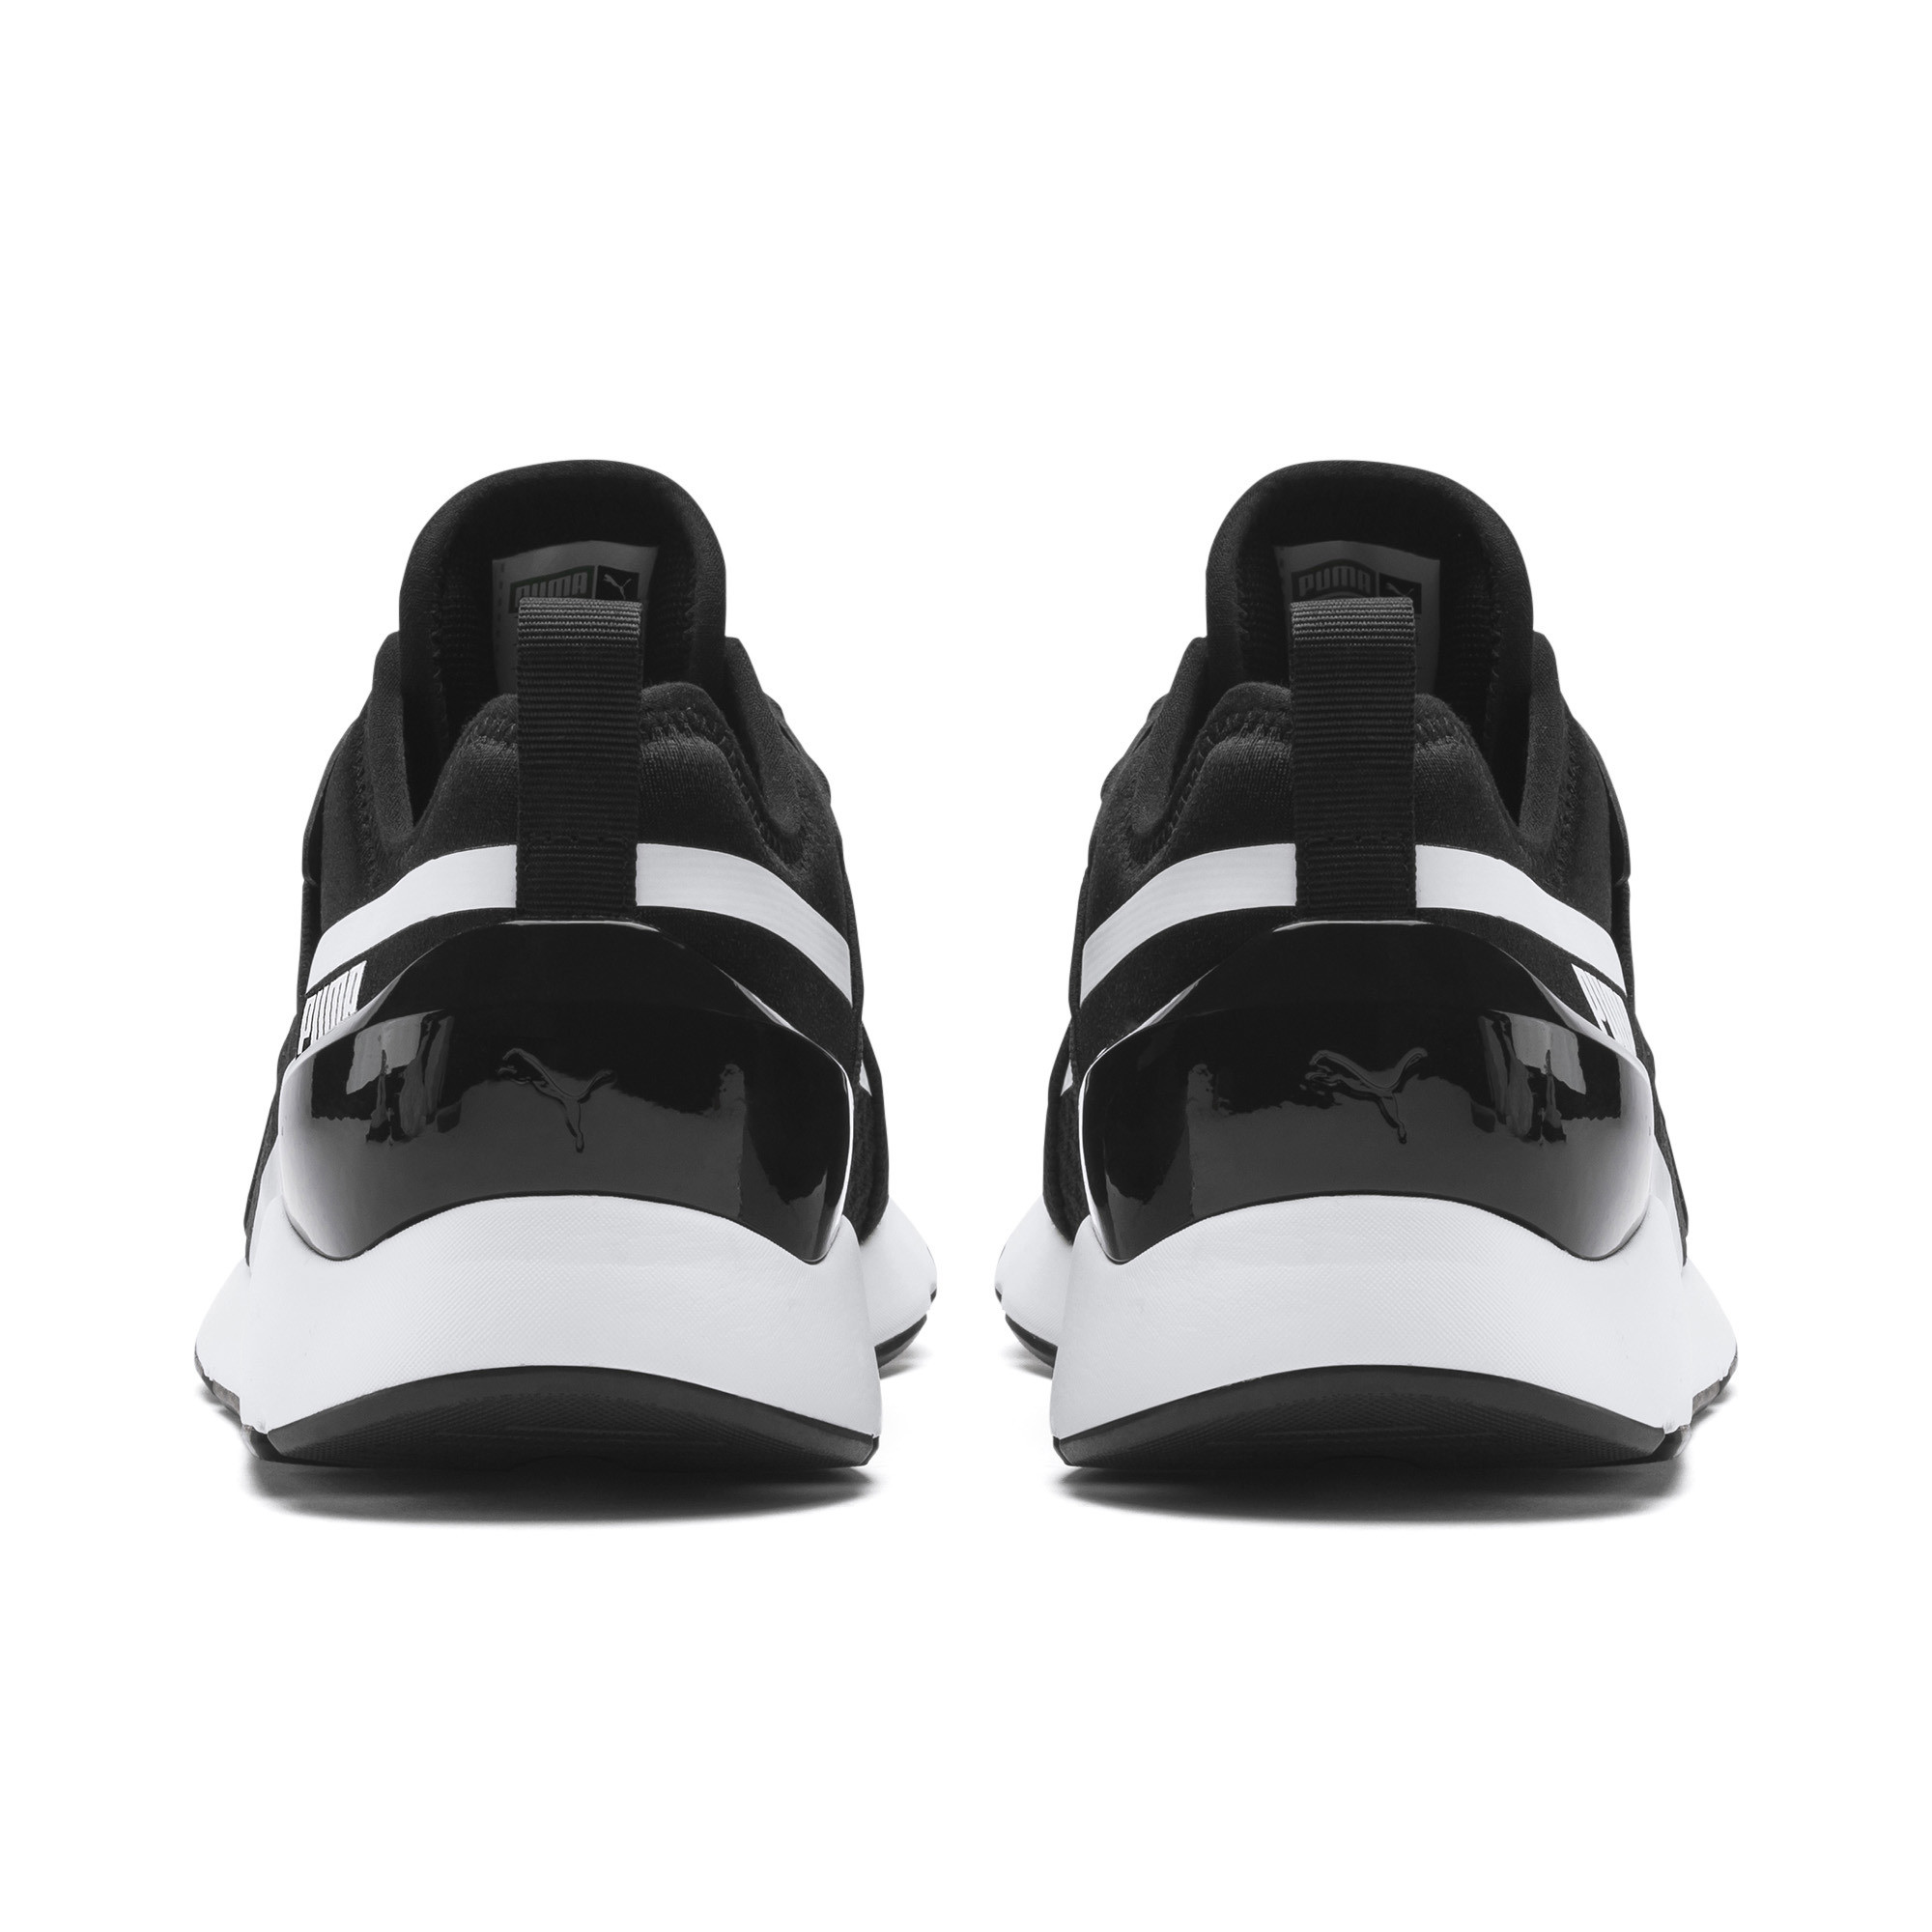 PUMA-Muse-X-2-Women-039-s-Sneakers-Women-Shoe-Evolution thumbnail 10